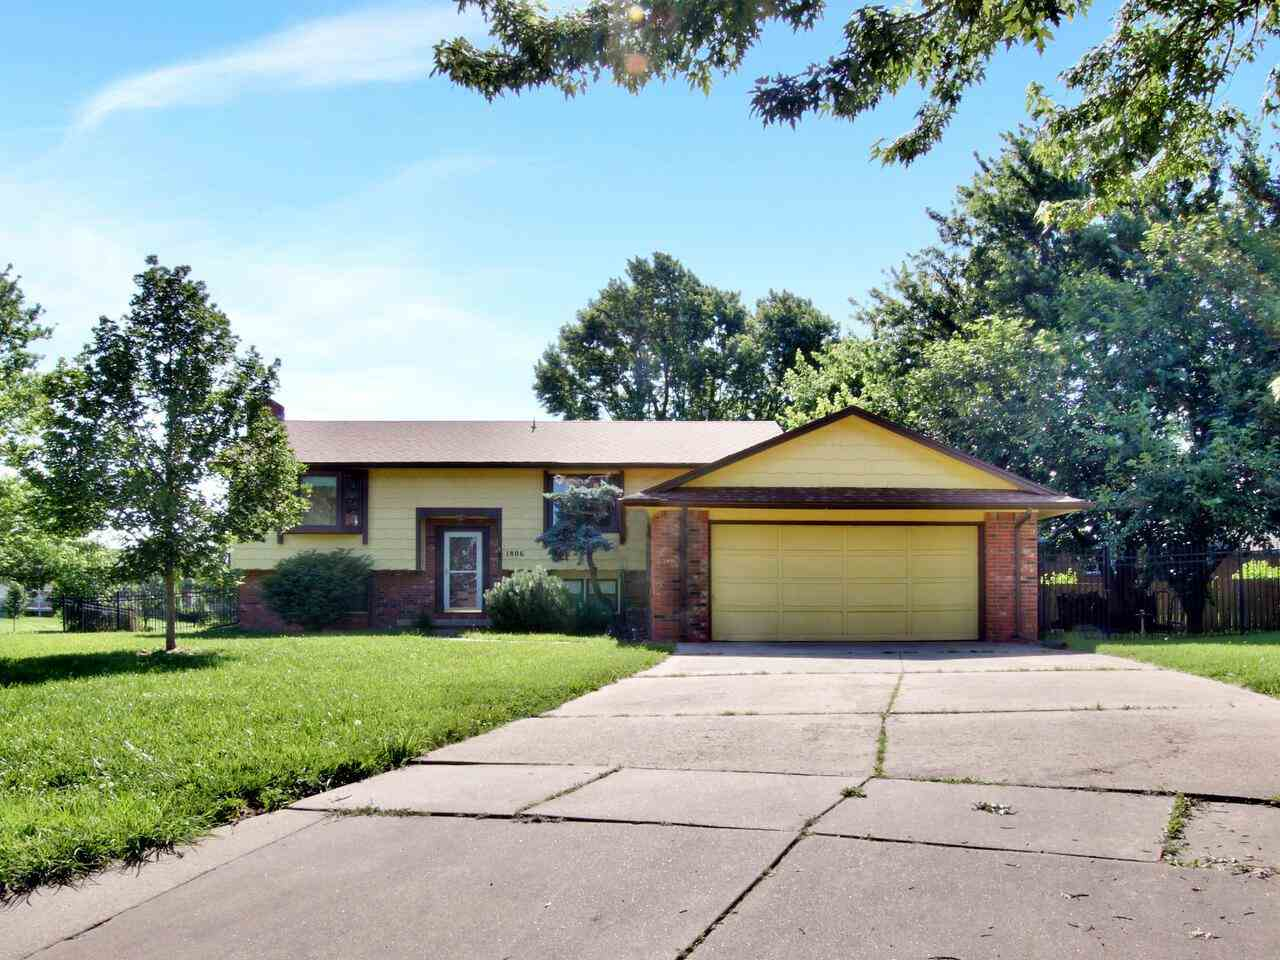 Well maintained 1 owner home with a lake view on the cul-de-sac. The main floor offers 3 bedrooms an